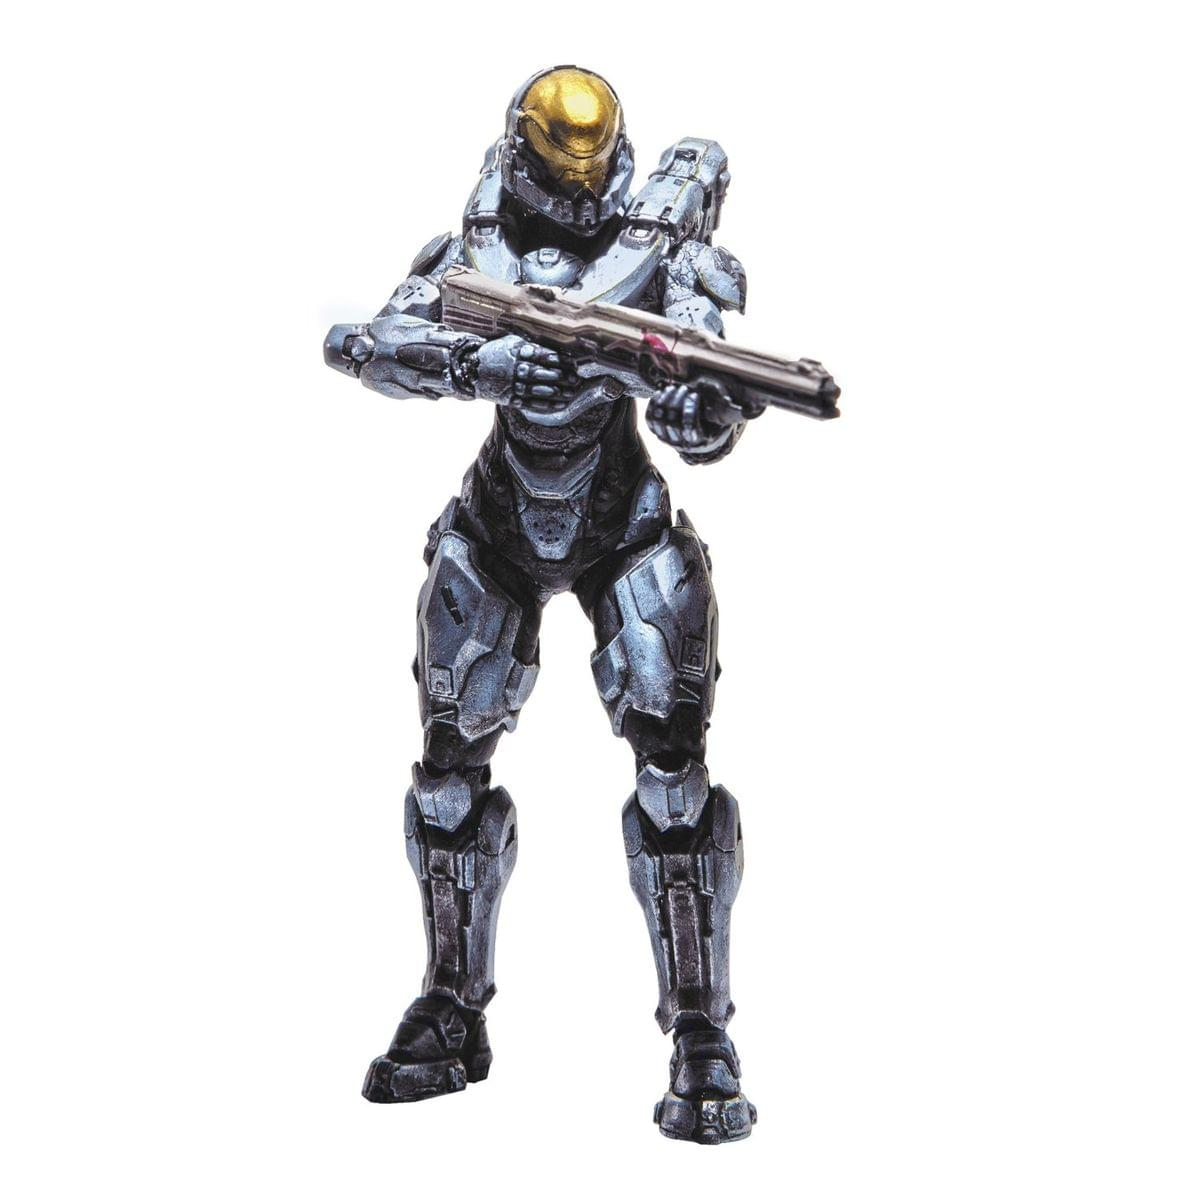 "Halo 5: Guardians Series 1 6"" Action Figure: Spartan Kelly"